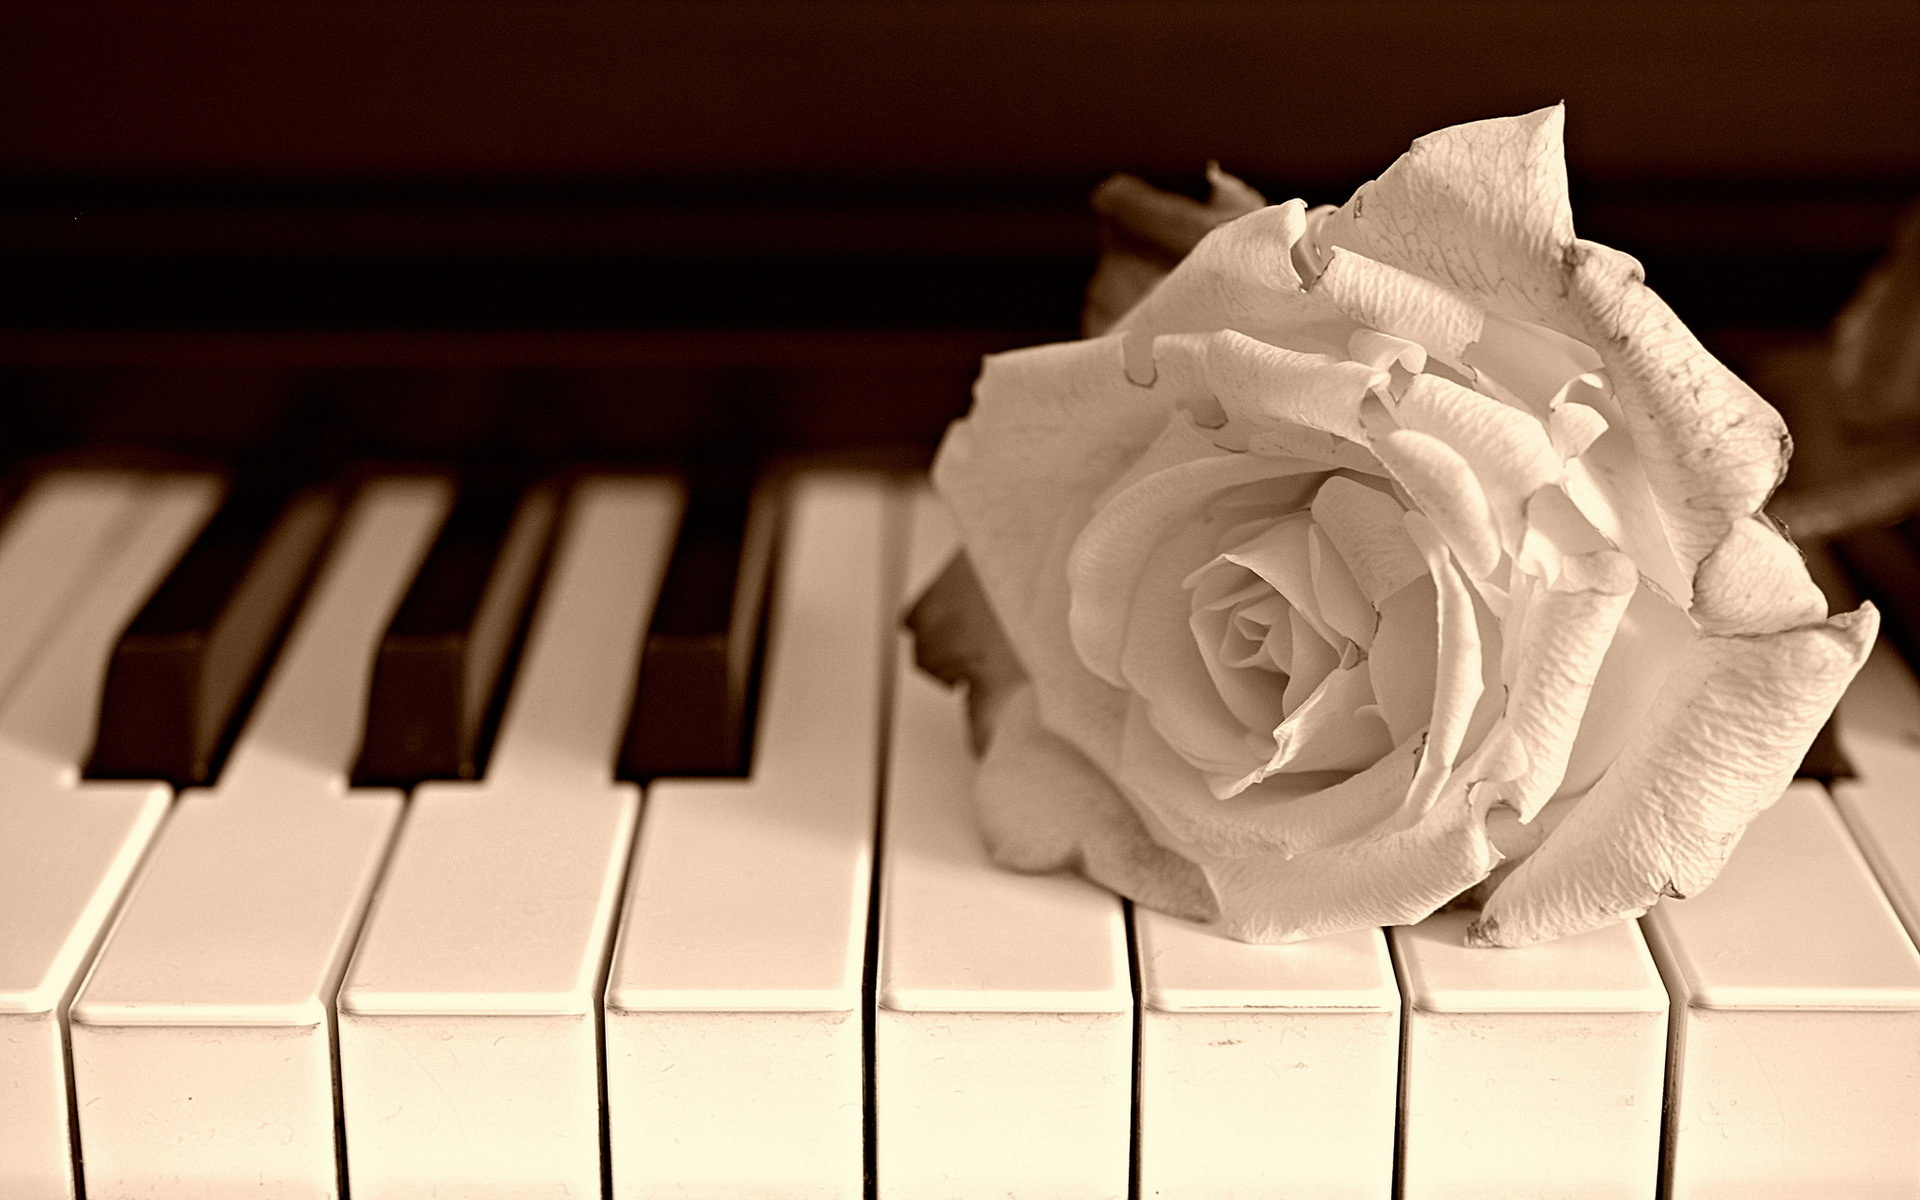 Piano wallpapers wallpaper high definition high - Cool piano backgrounds ...